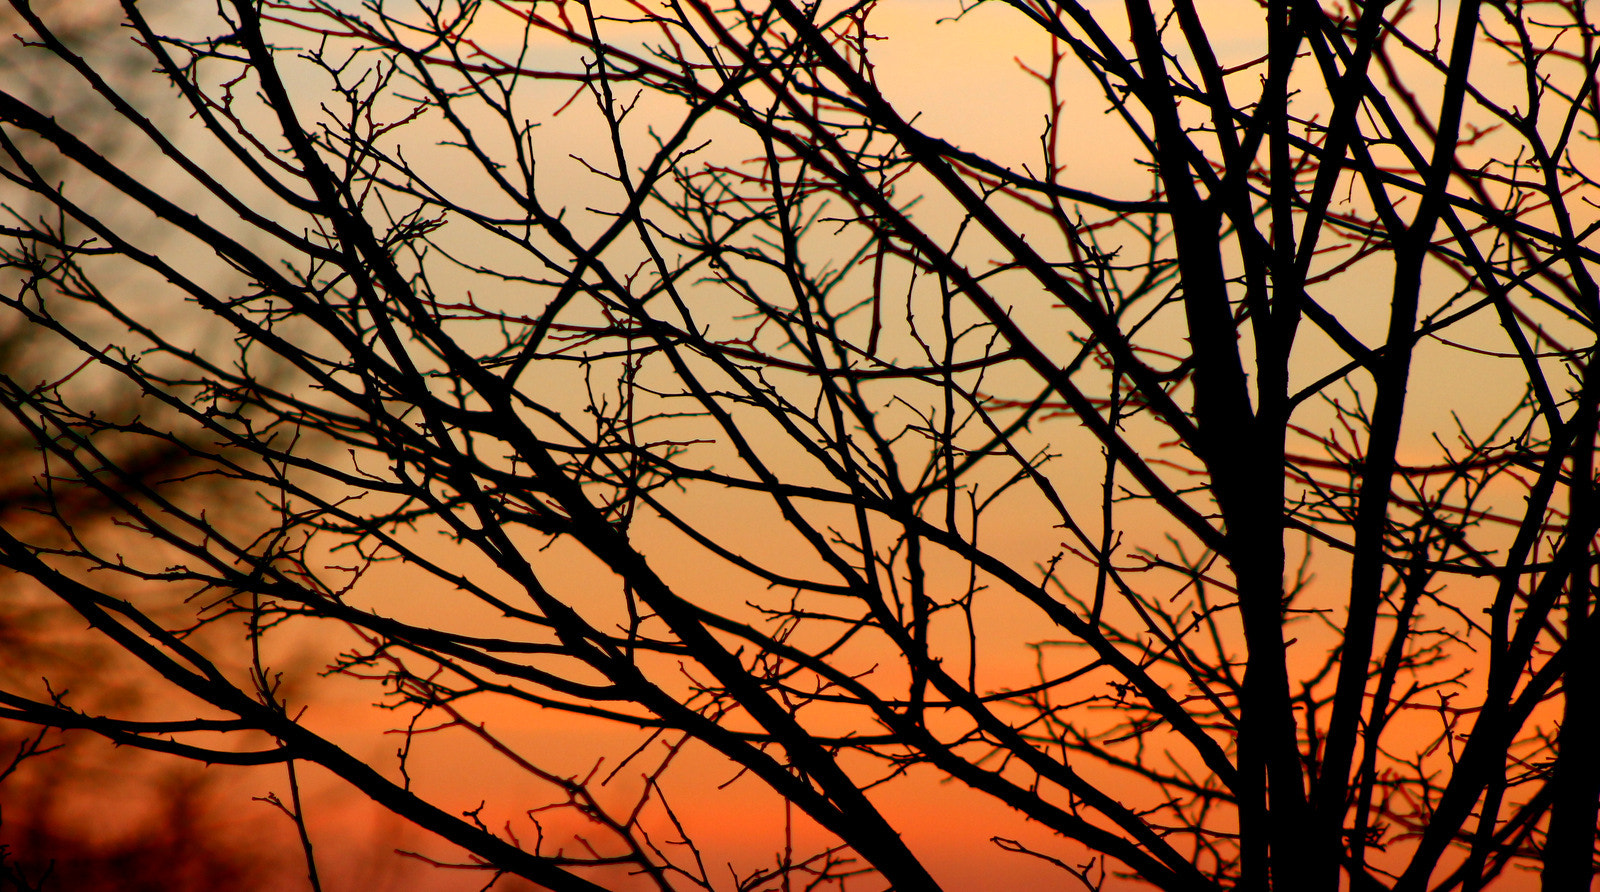 Photograph Branches. by Andrew Stein on 500px